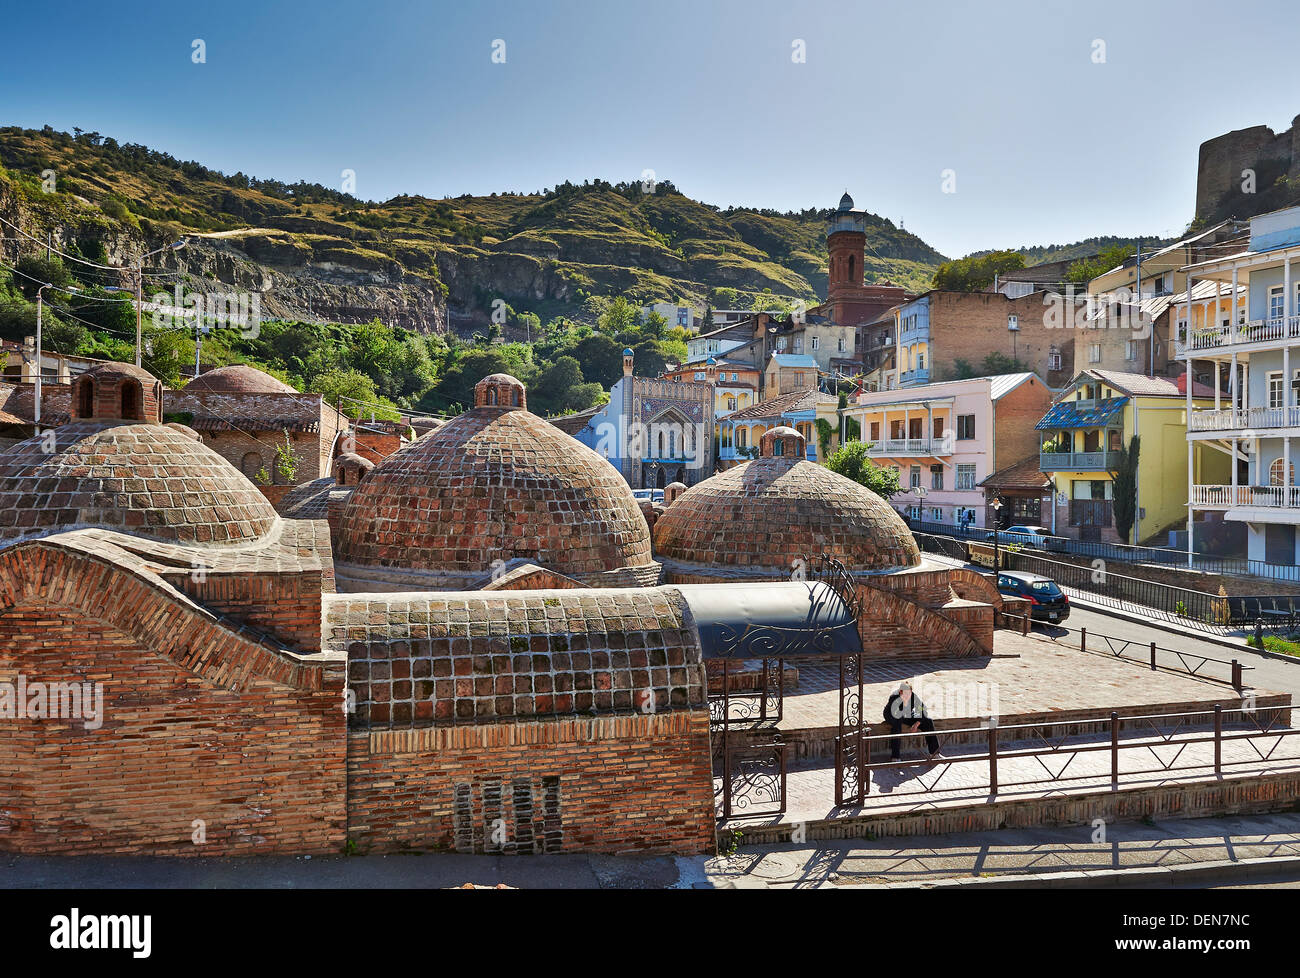 brick domed Sulfur Baths, Tbilisi, Georgia Stock Photo